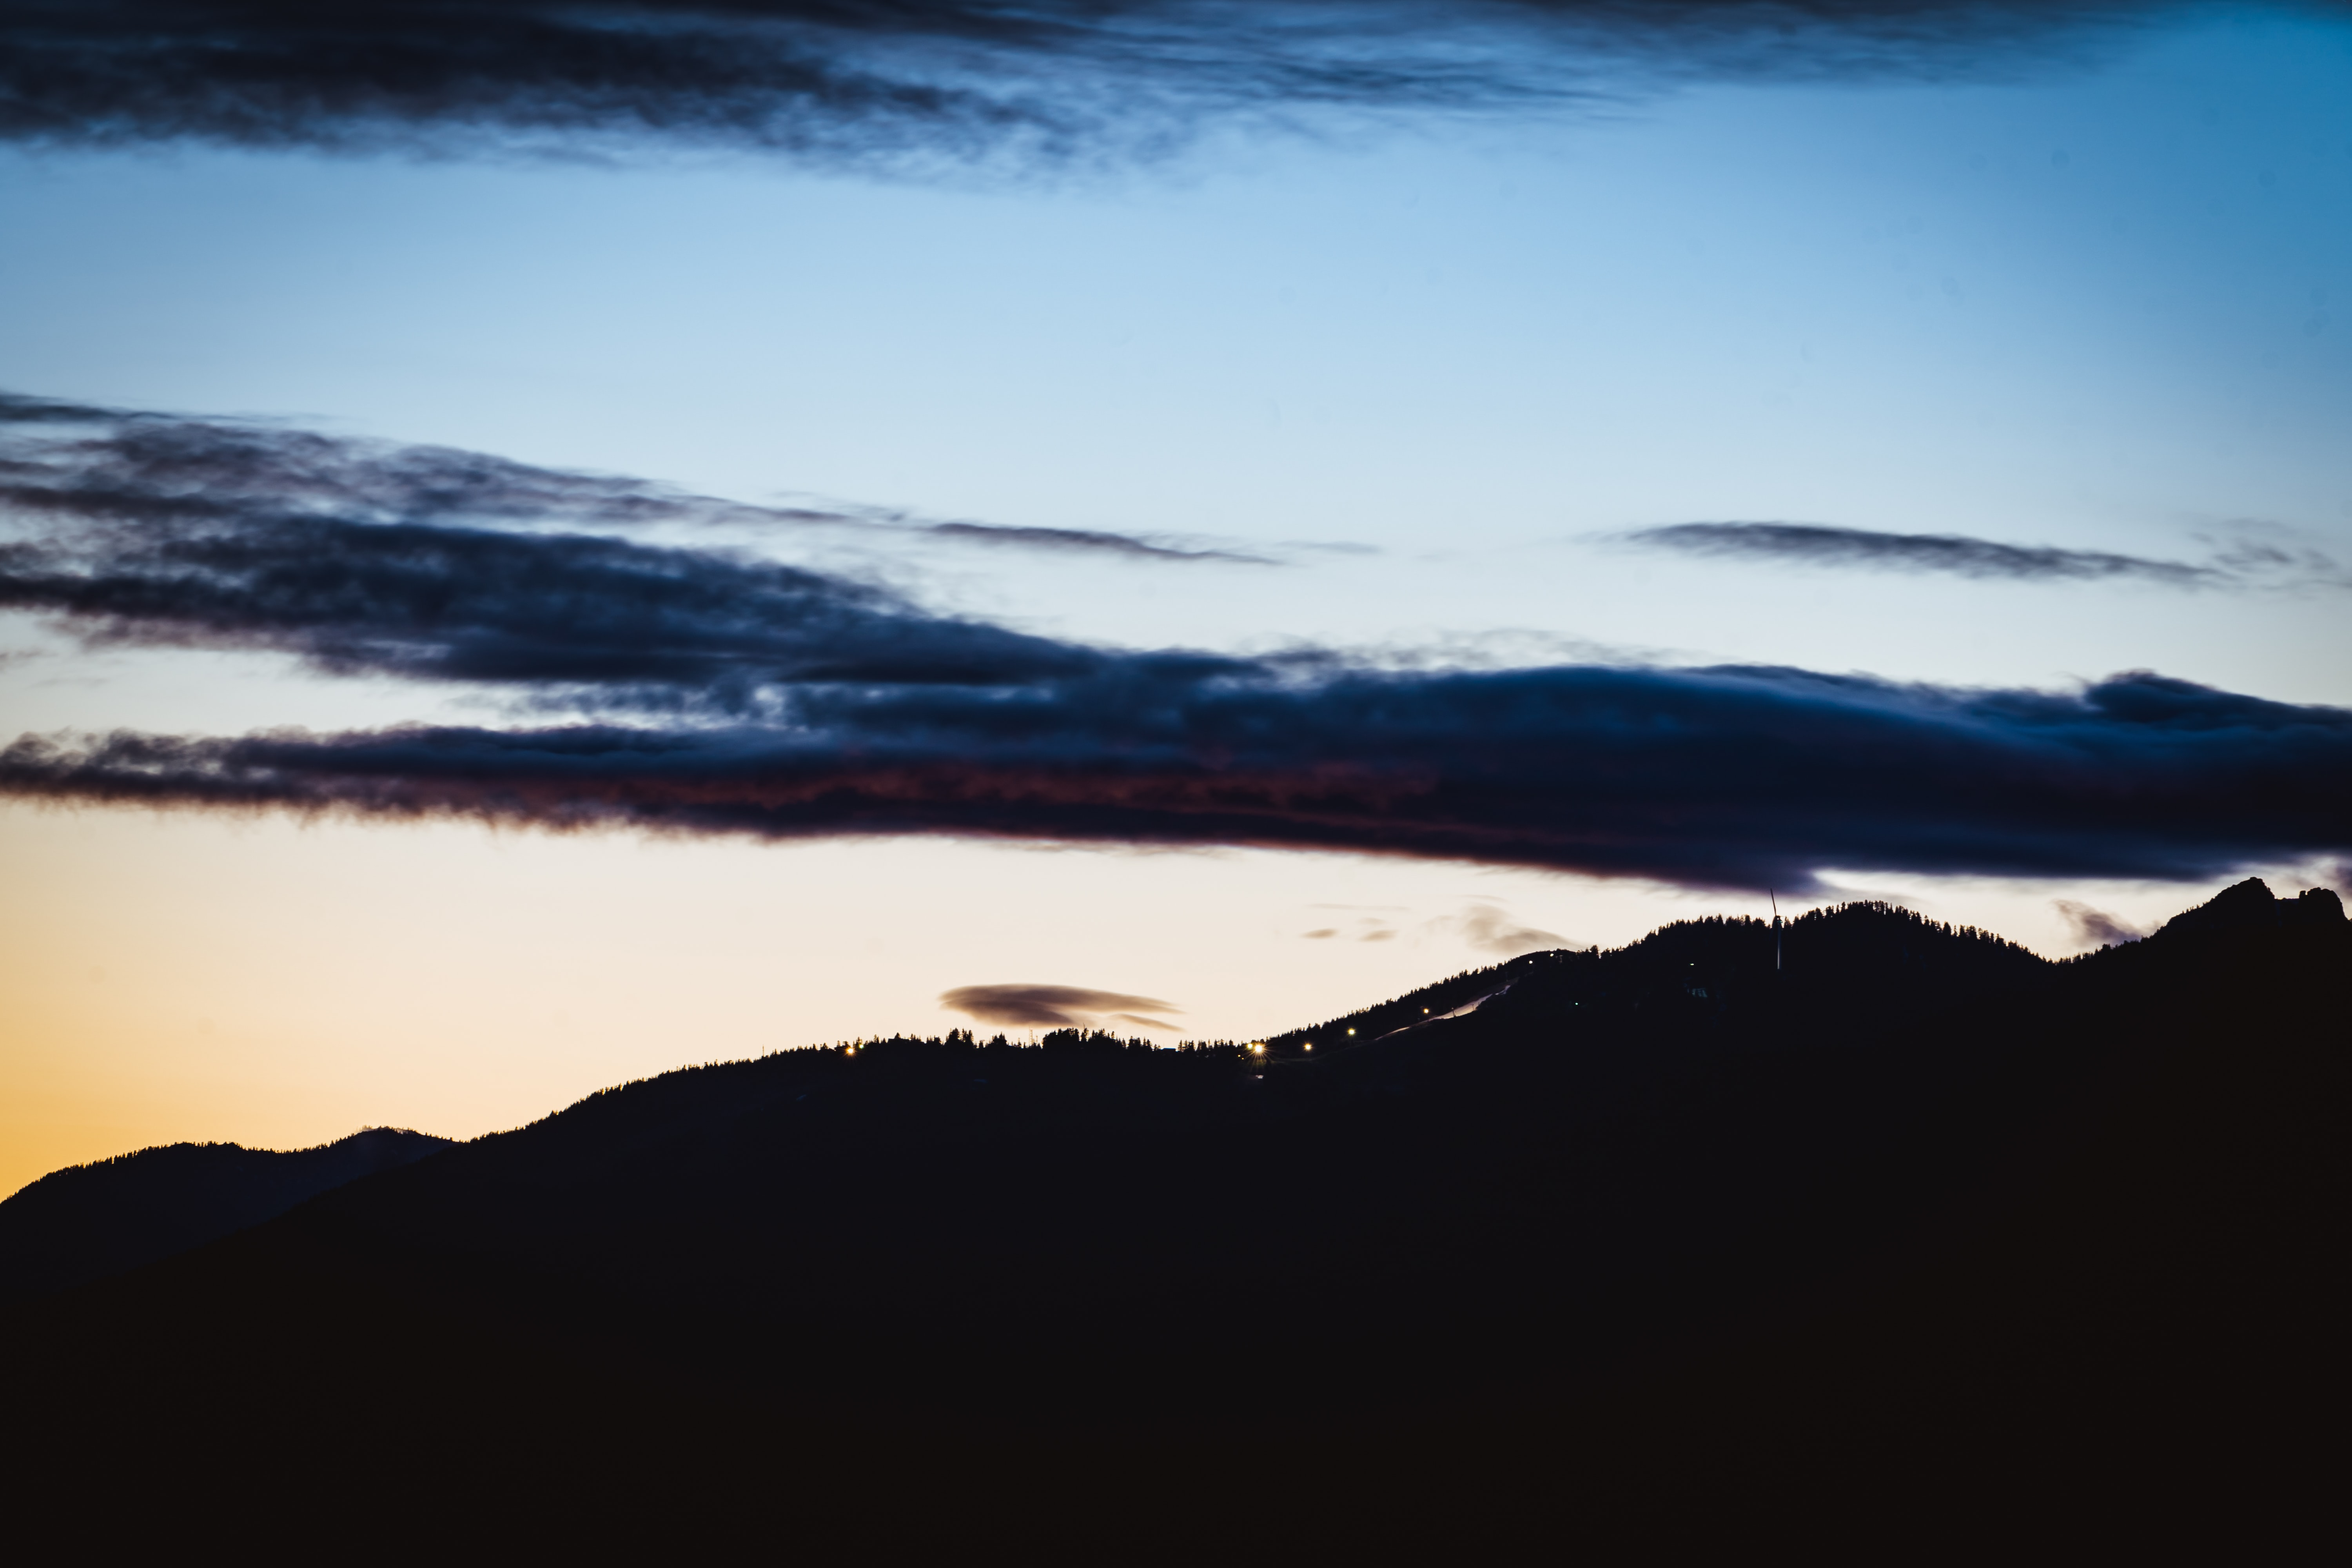 137751 download wallpaper Nature, Hill, Silhouette, Dusk, Twilight, Sky screensavers and pictures for free